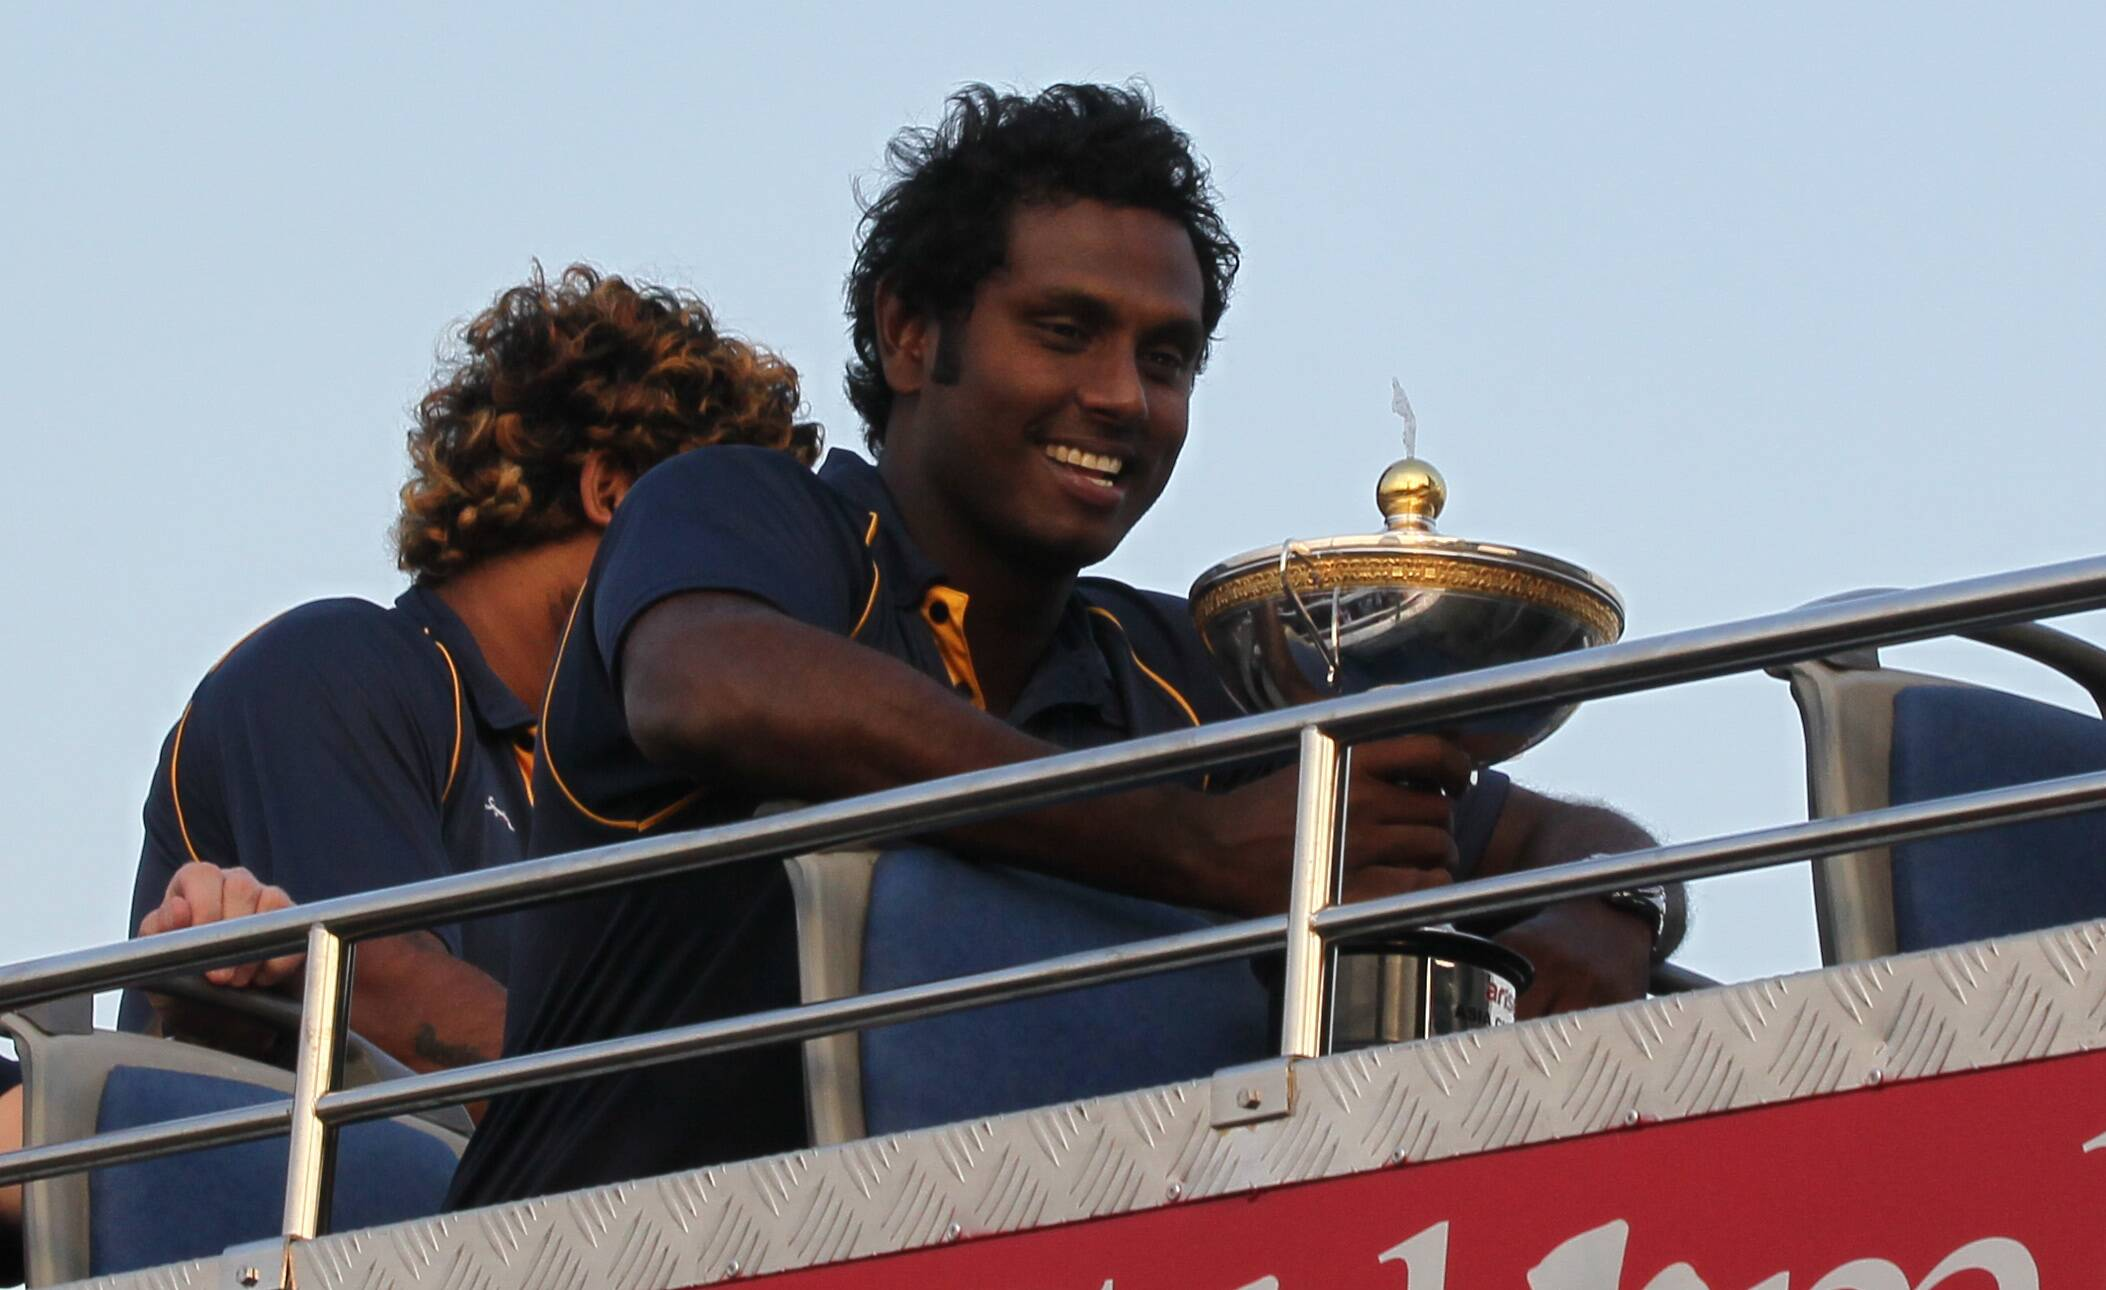 Sri Lankan cricket captain Angelo Mathews, right, smiles holding cup as he sits in an open bus with team mate Lasith Malinga, left,  upon their return from Bangladesh after winning the Asia Cup in Colombo, Sri Lanka, Sunday, March 9, 2014. Sri Lanka Saturday won the Asia Cup tournament defeating Pakistan by 5 wickets.  (AP Photo/Eranga Jayawardena)